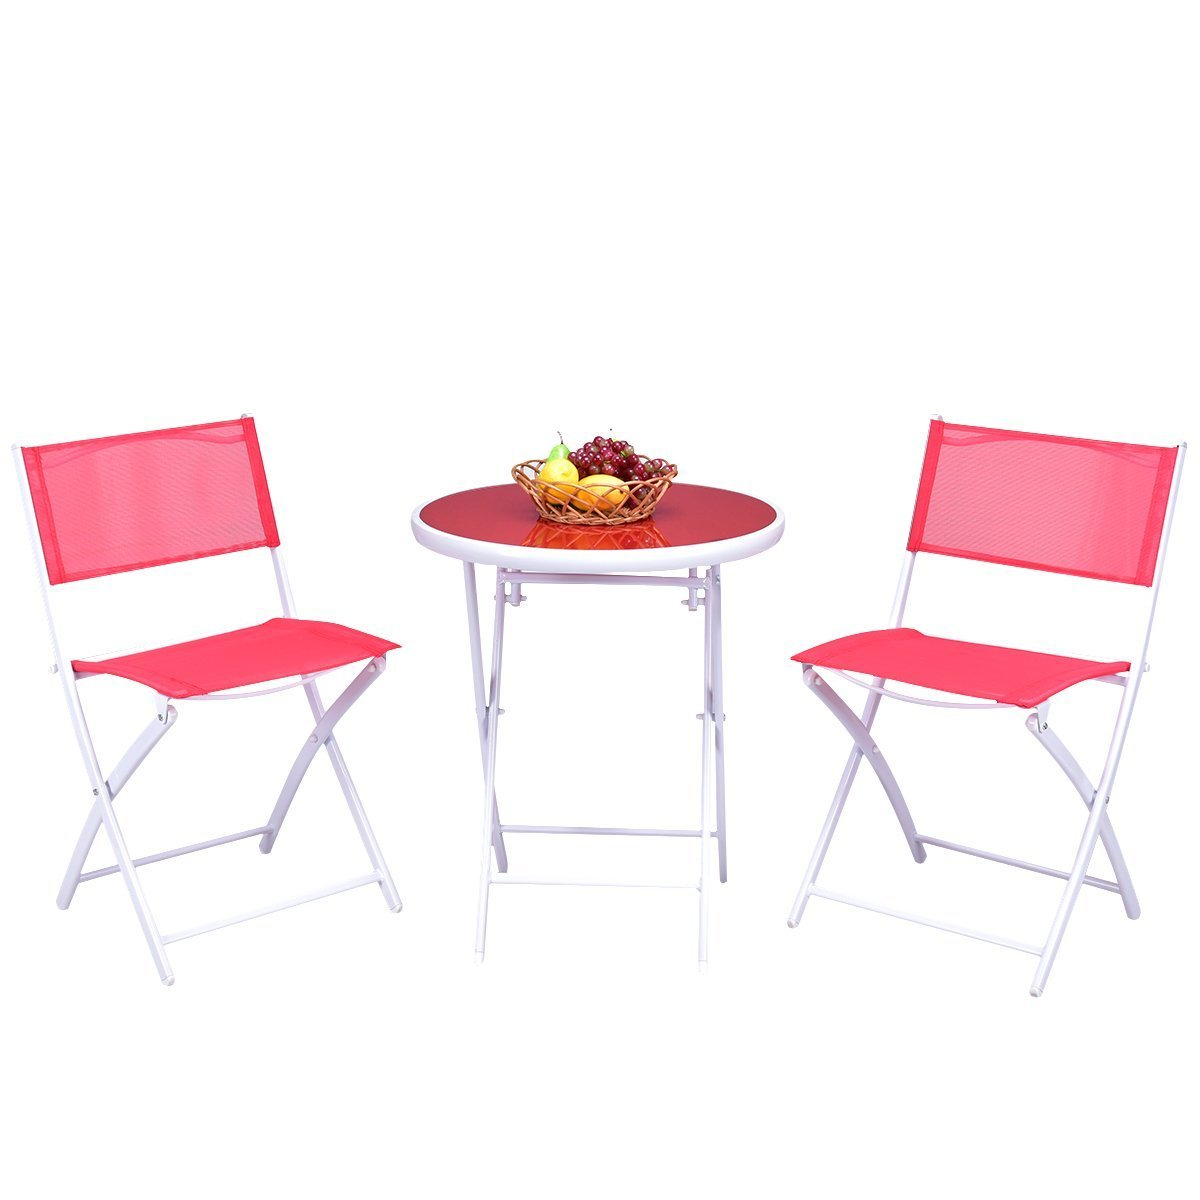 Giantex 3 PCS Folding Bistro Table Chairs Set Garden Backyard Patio Outdoor Furniture (Black) OP3355BK